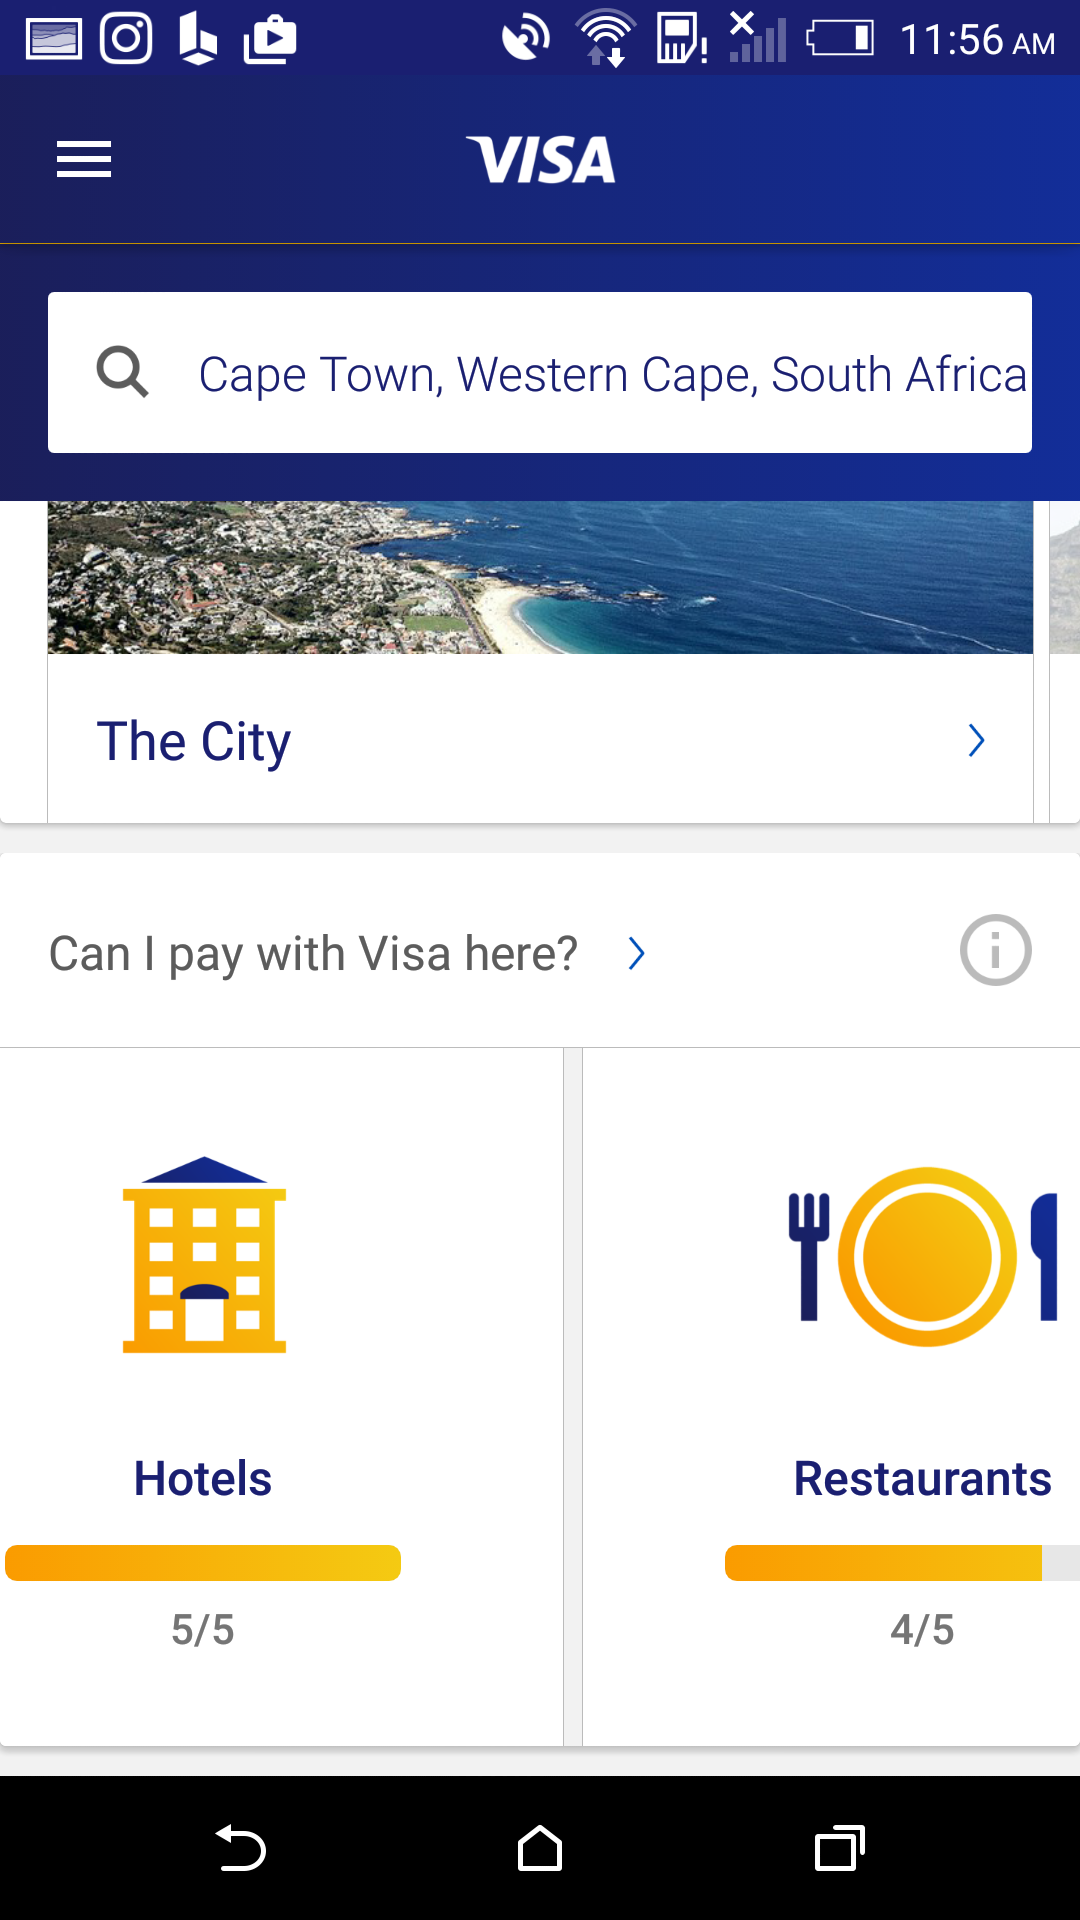 visa-travel-tools-3